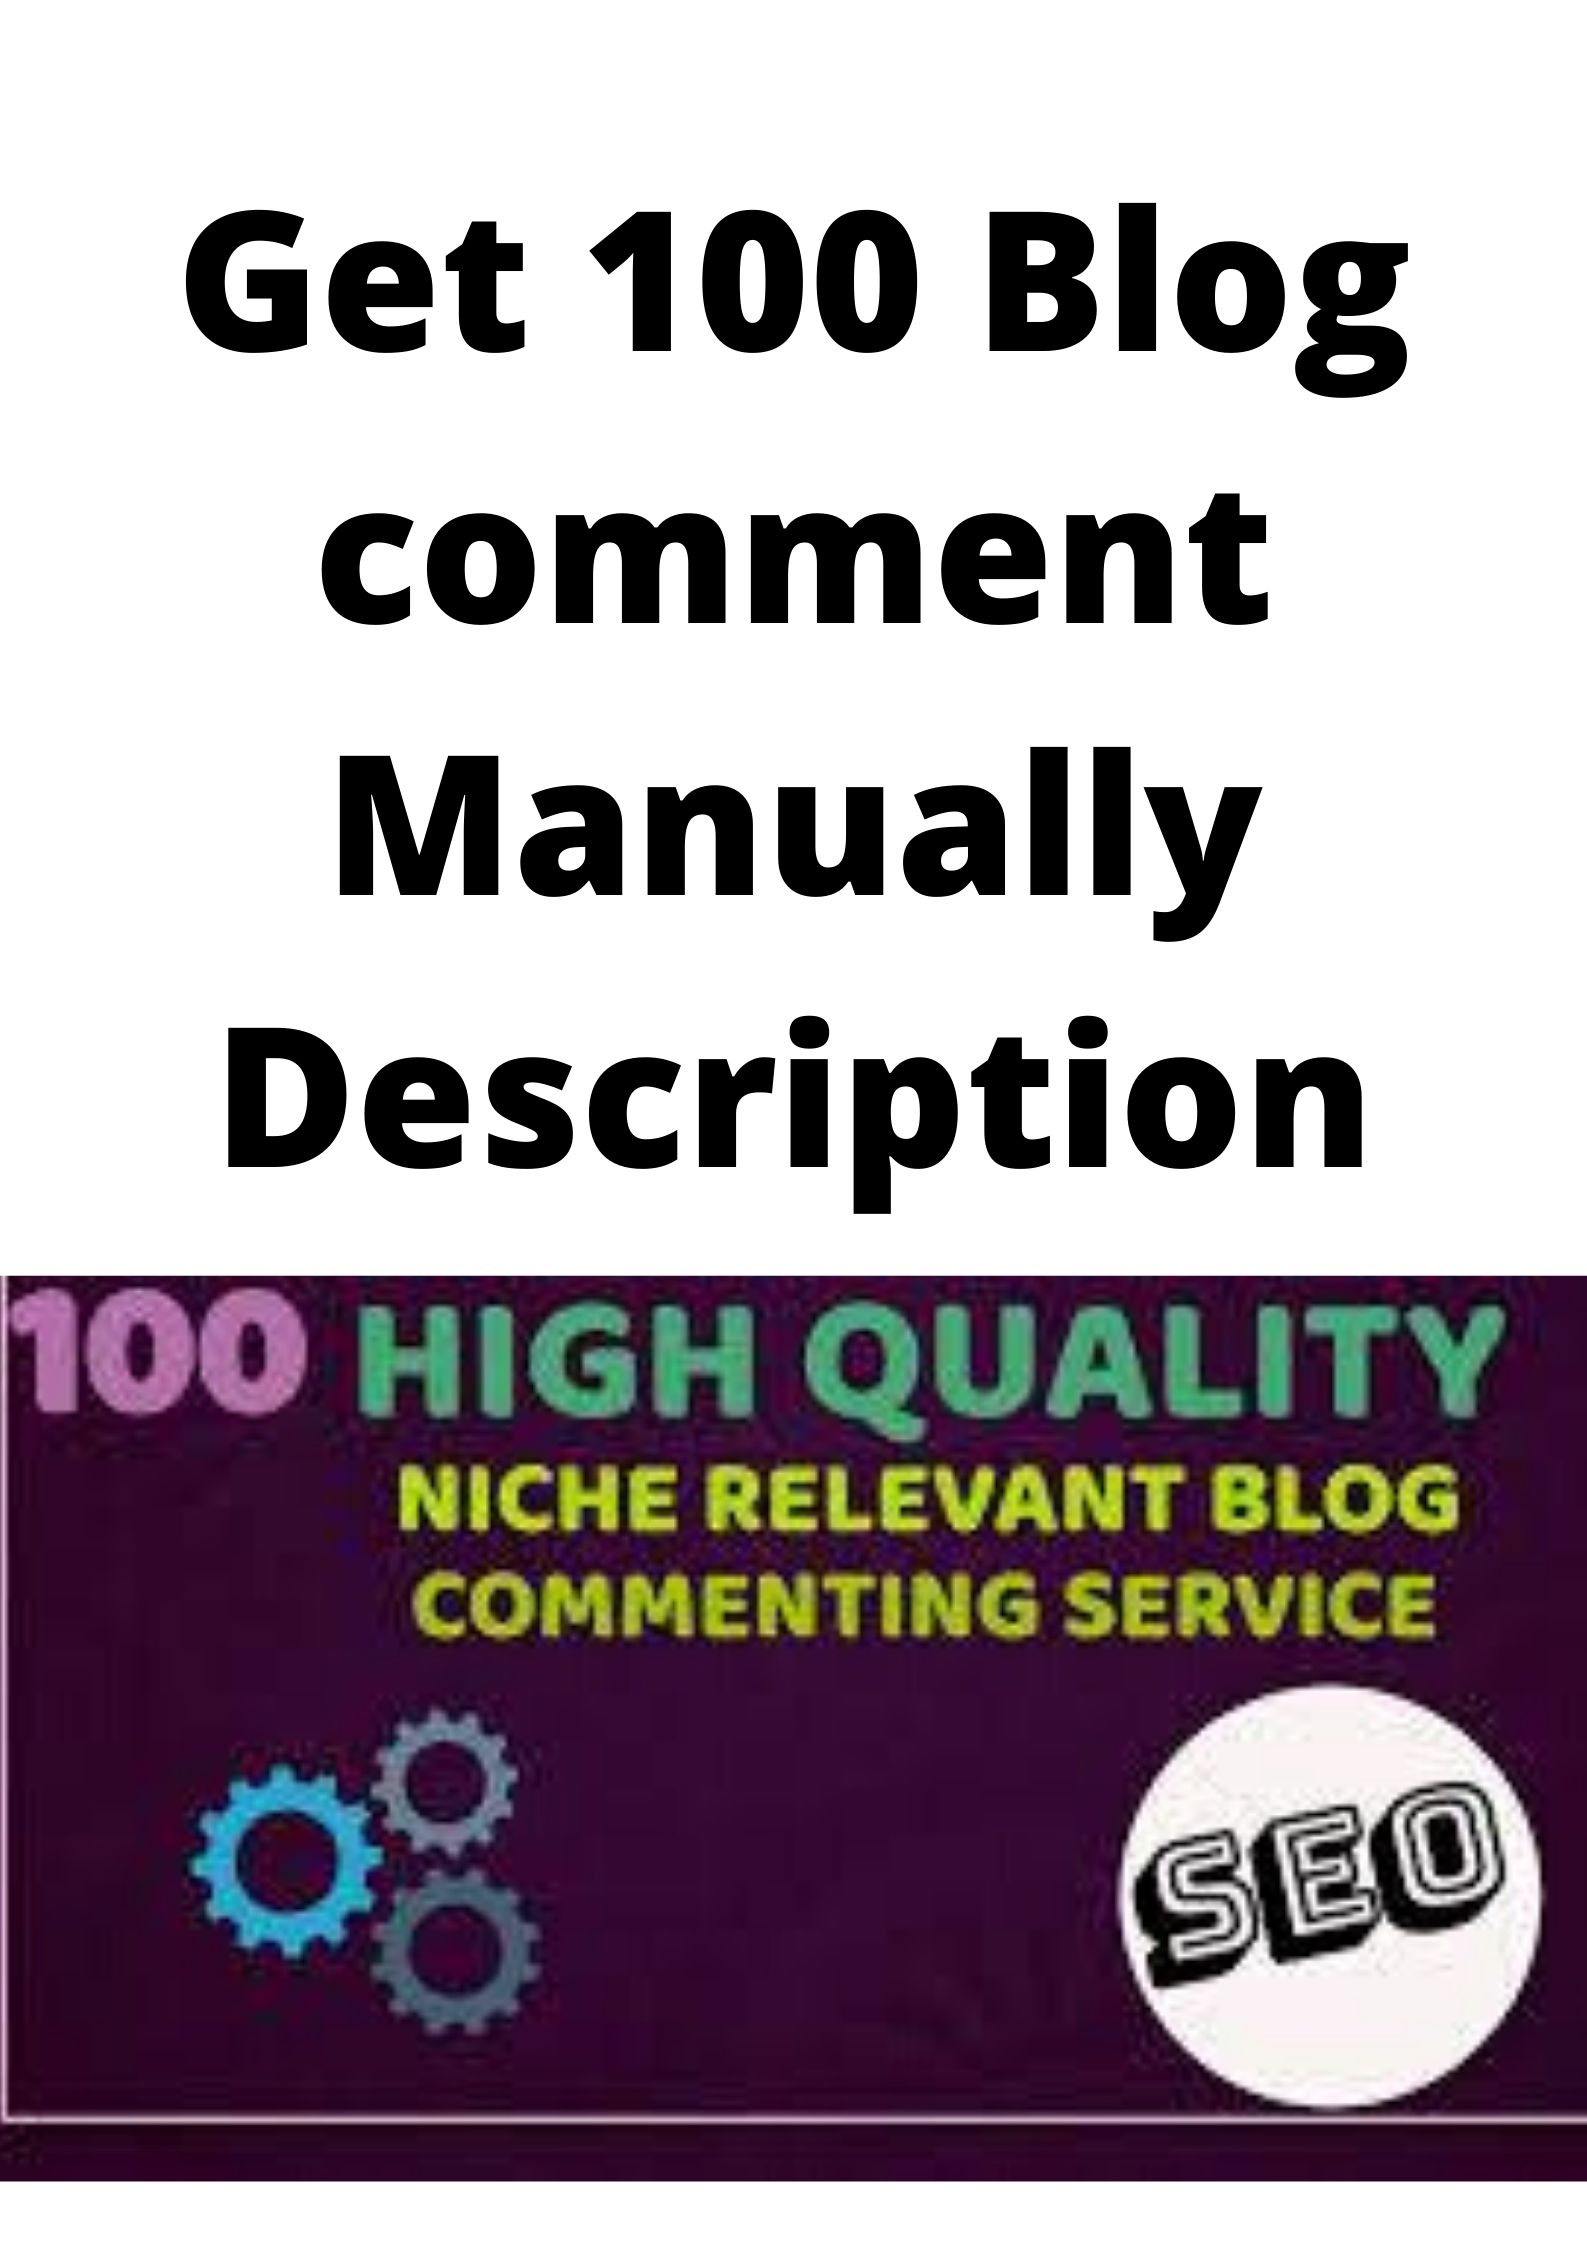 Neche targeted Blog comment Manually for a perfect result